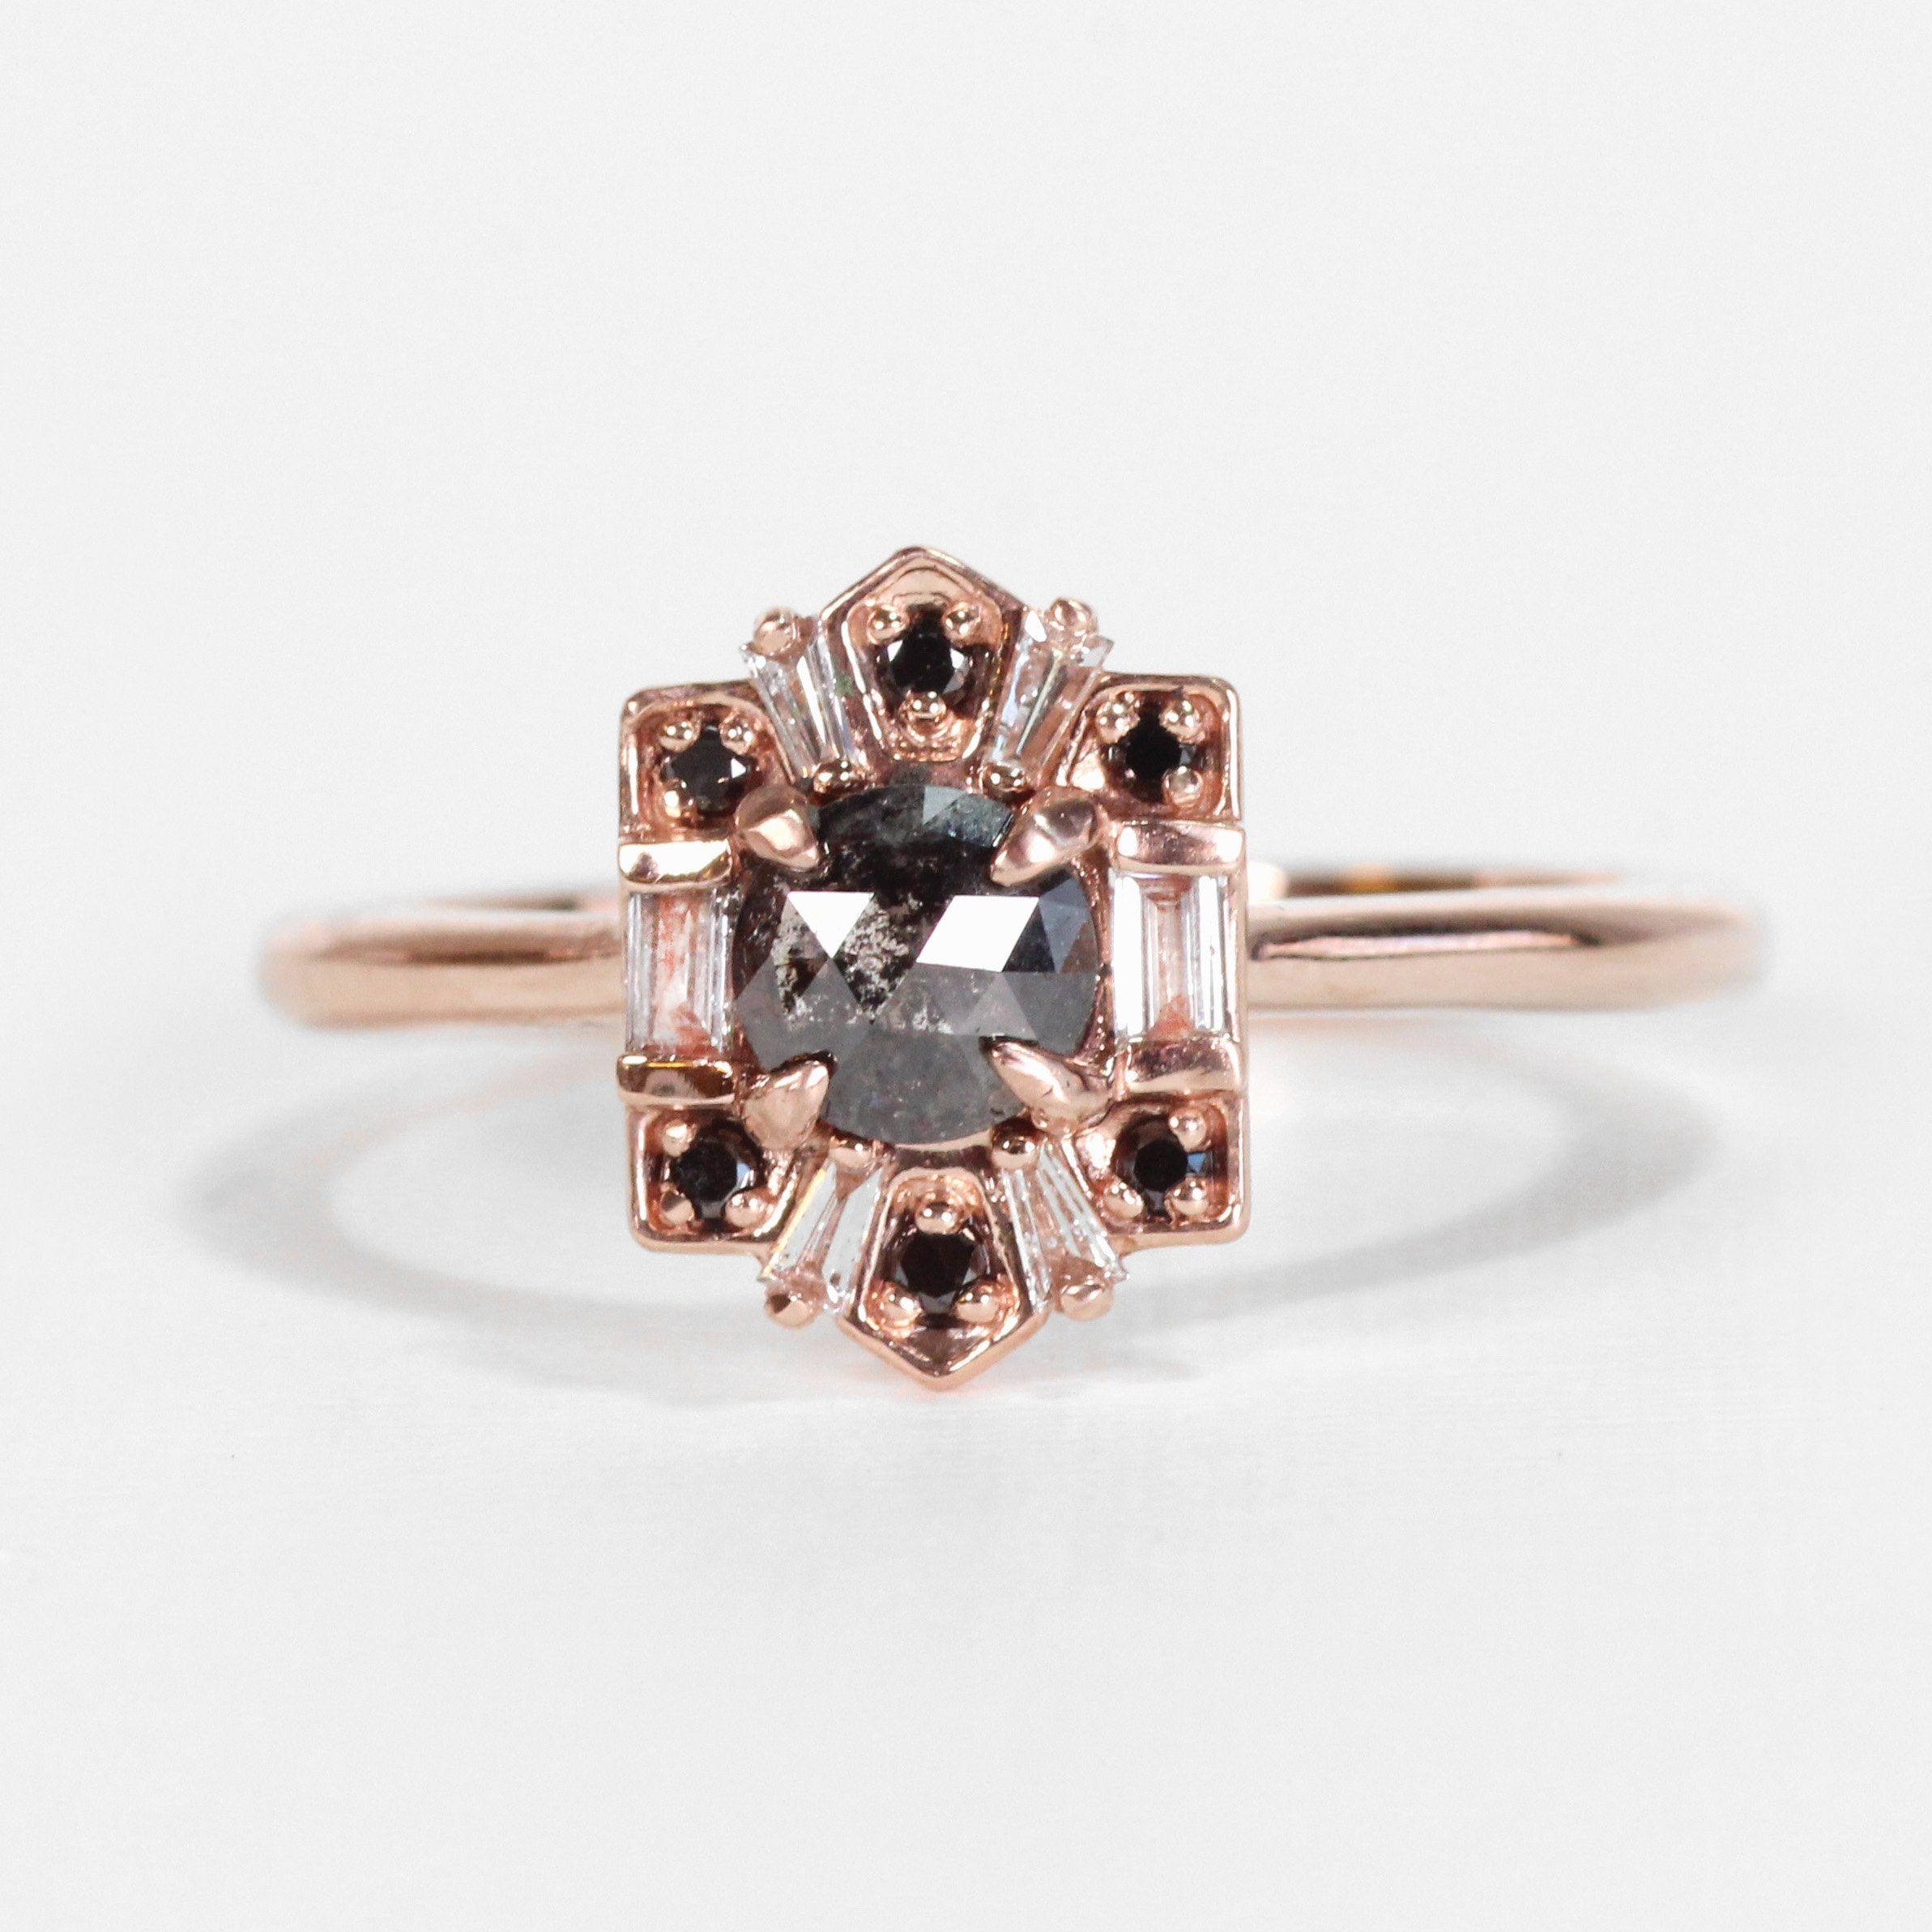 Geraldine Ring with a Black Diamond and Diamond Accents in 10k Rose Gold - Ready to Size and Ship